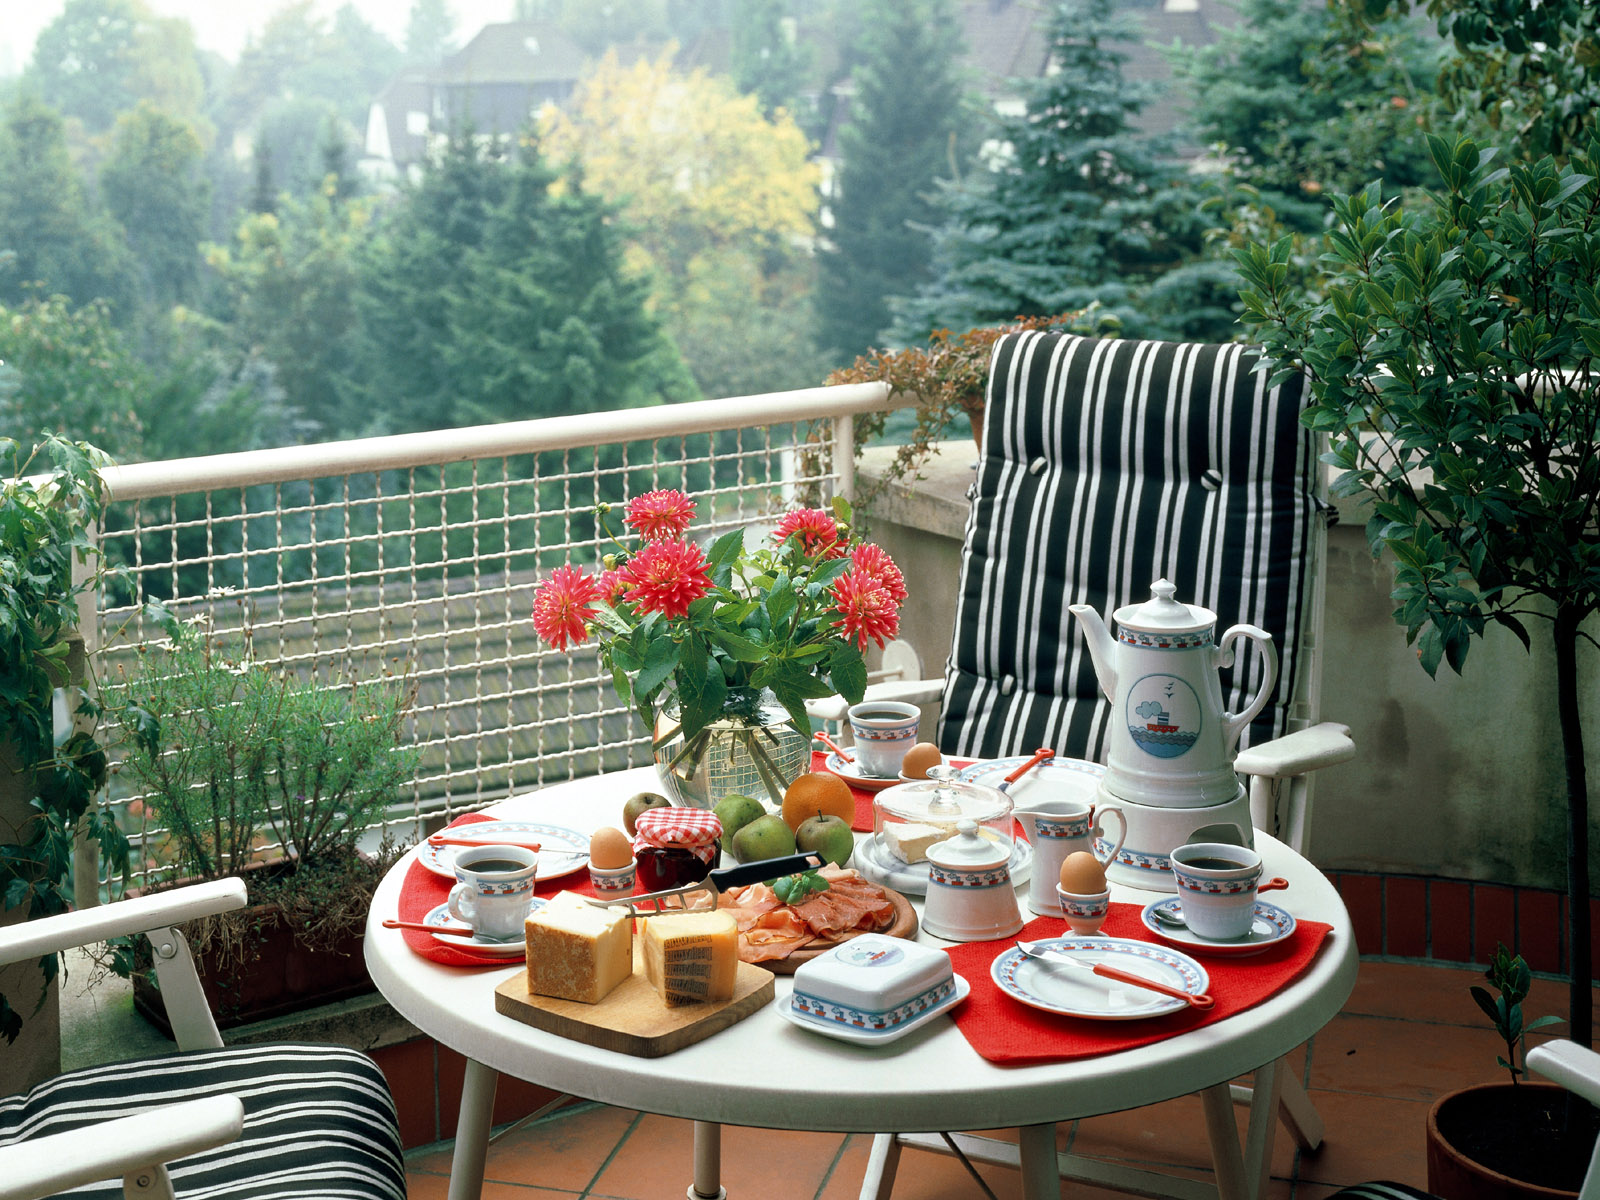 Balcony-Table-Decoraction Balcony Table Decoration